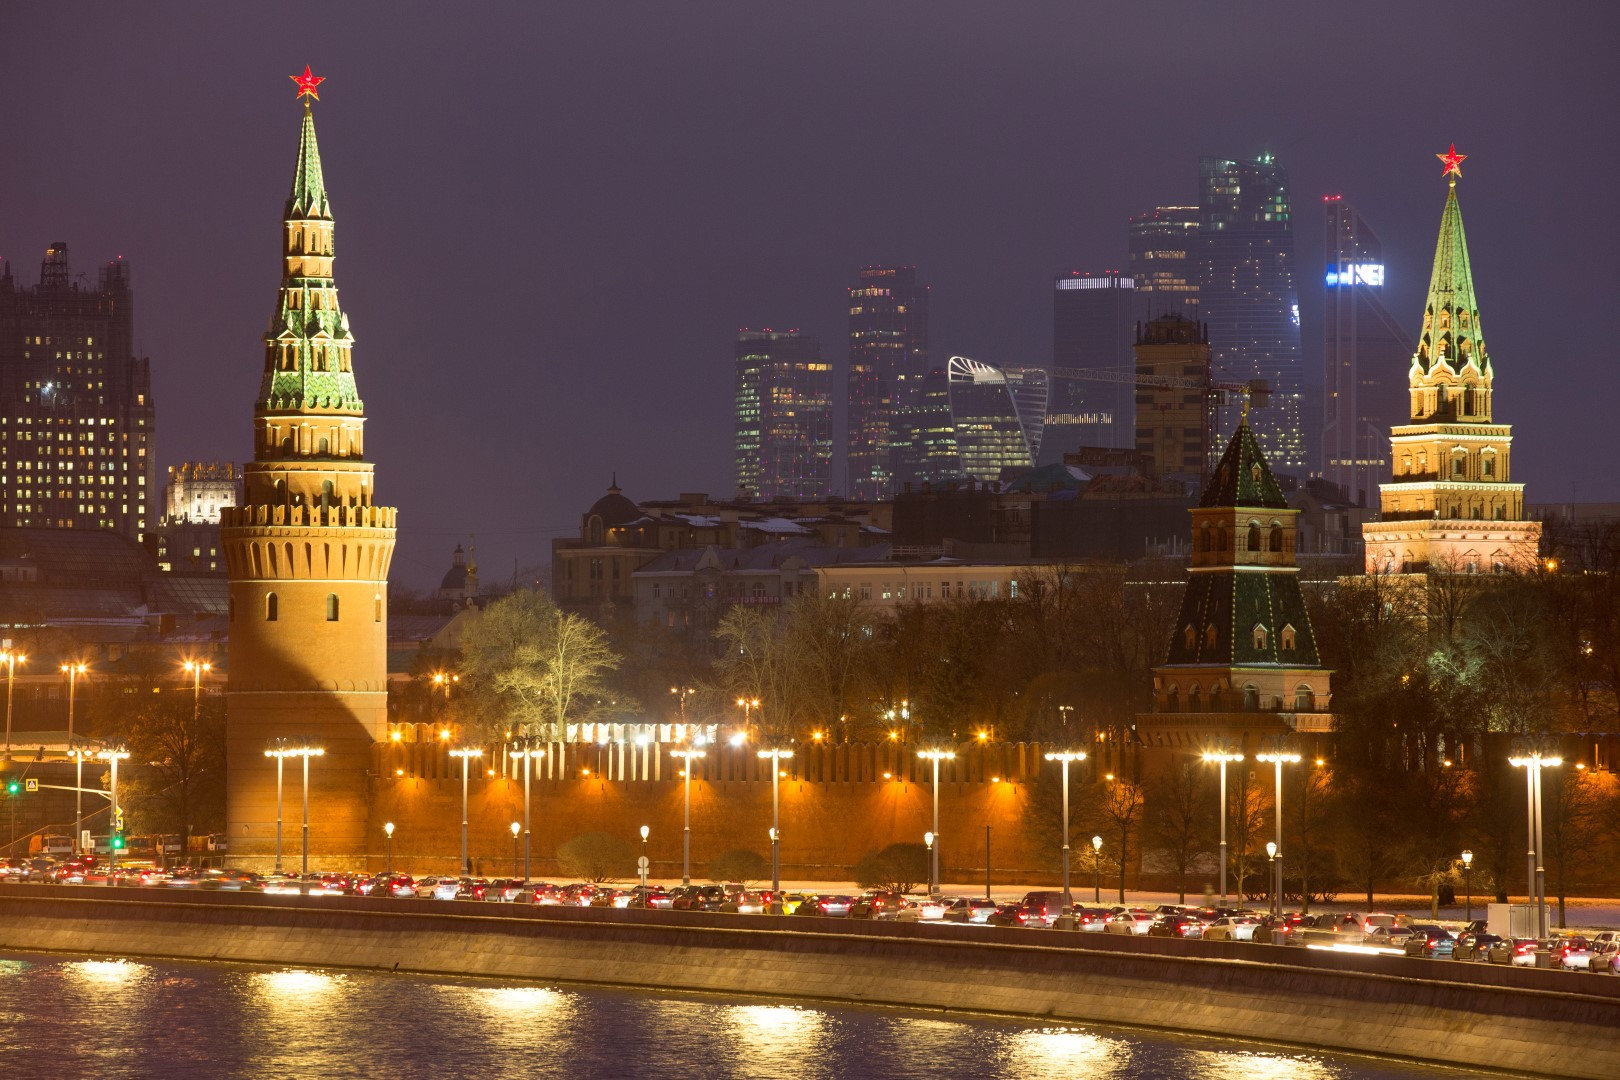 Skycrapers of the Moscow International Business Center, known as Moscow City, right, stand beyond the illuminated buildings of the Kremlin palace in Moscow, Russia, on Wednesday, Nov. 9, 2016. Russia is realistic about limits on the prospects for an immediate improvement in relations with the U.S. after President-elect Donald Trump takes office, according to President Vladimir Putin's spokesman. Photographer: Andrey Rudakov/Bloomberg